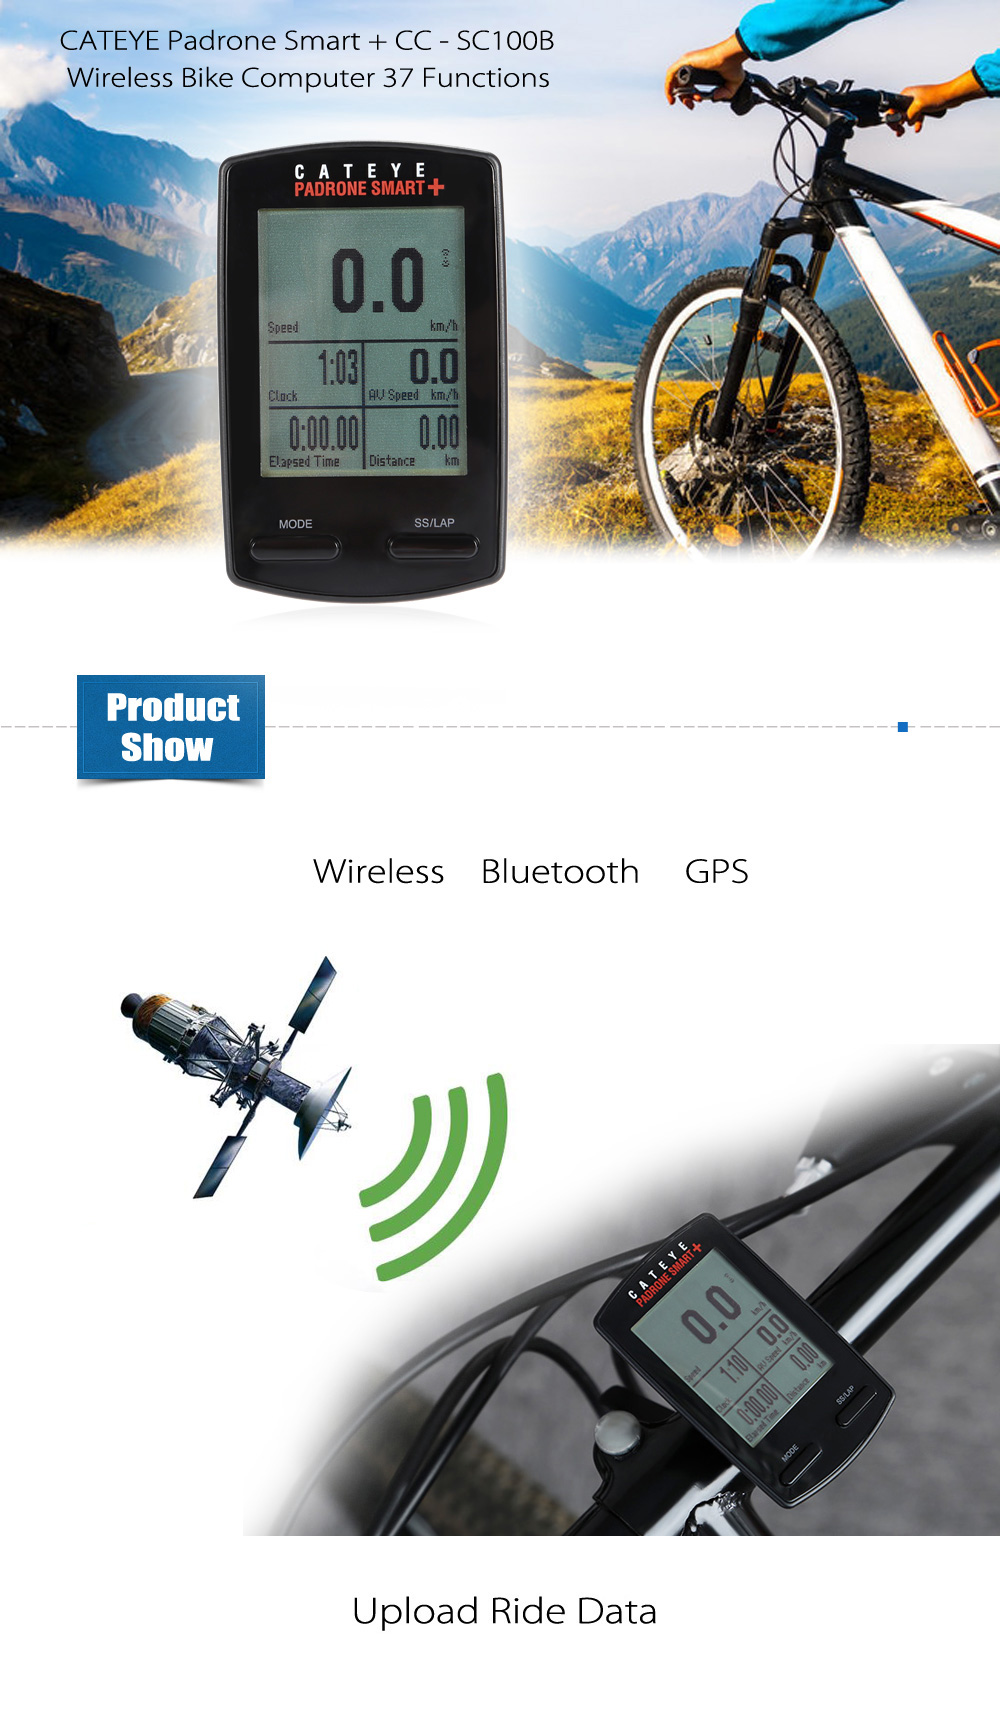 CATEYE Padrone Smart + CC - SC100B Auto Power Saving Mode Wireless Bike Computer